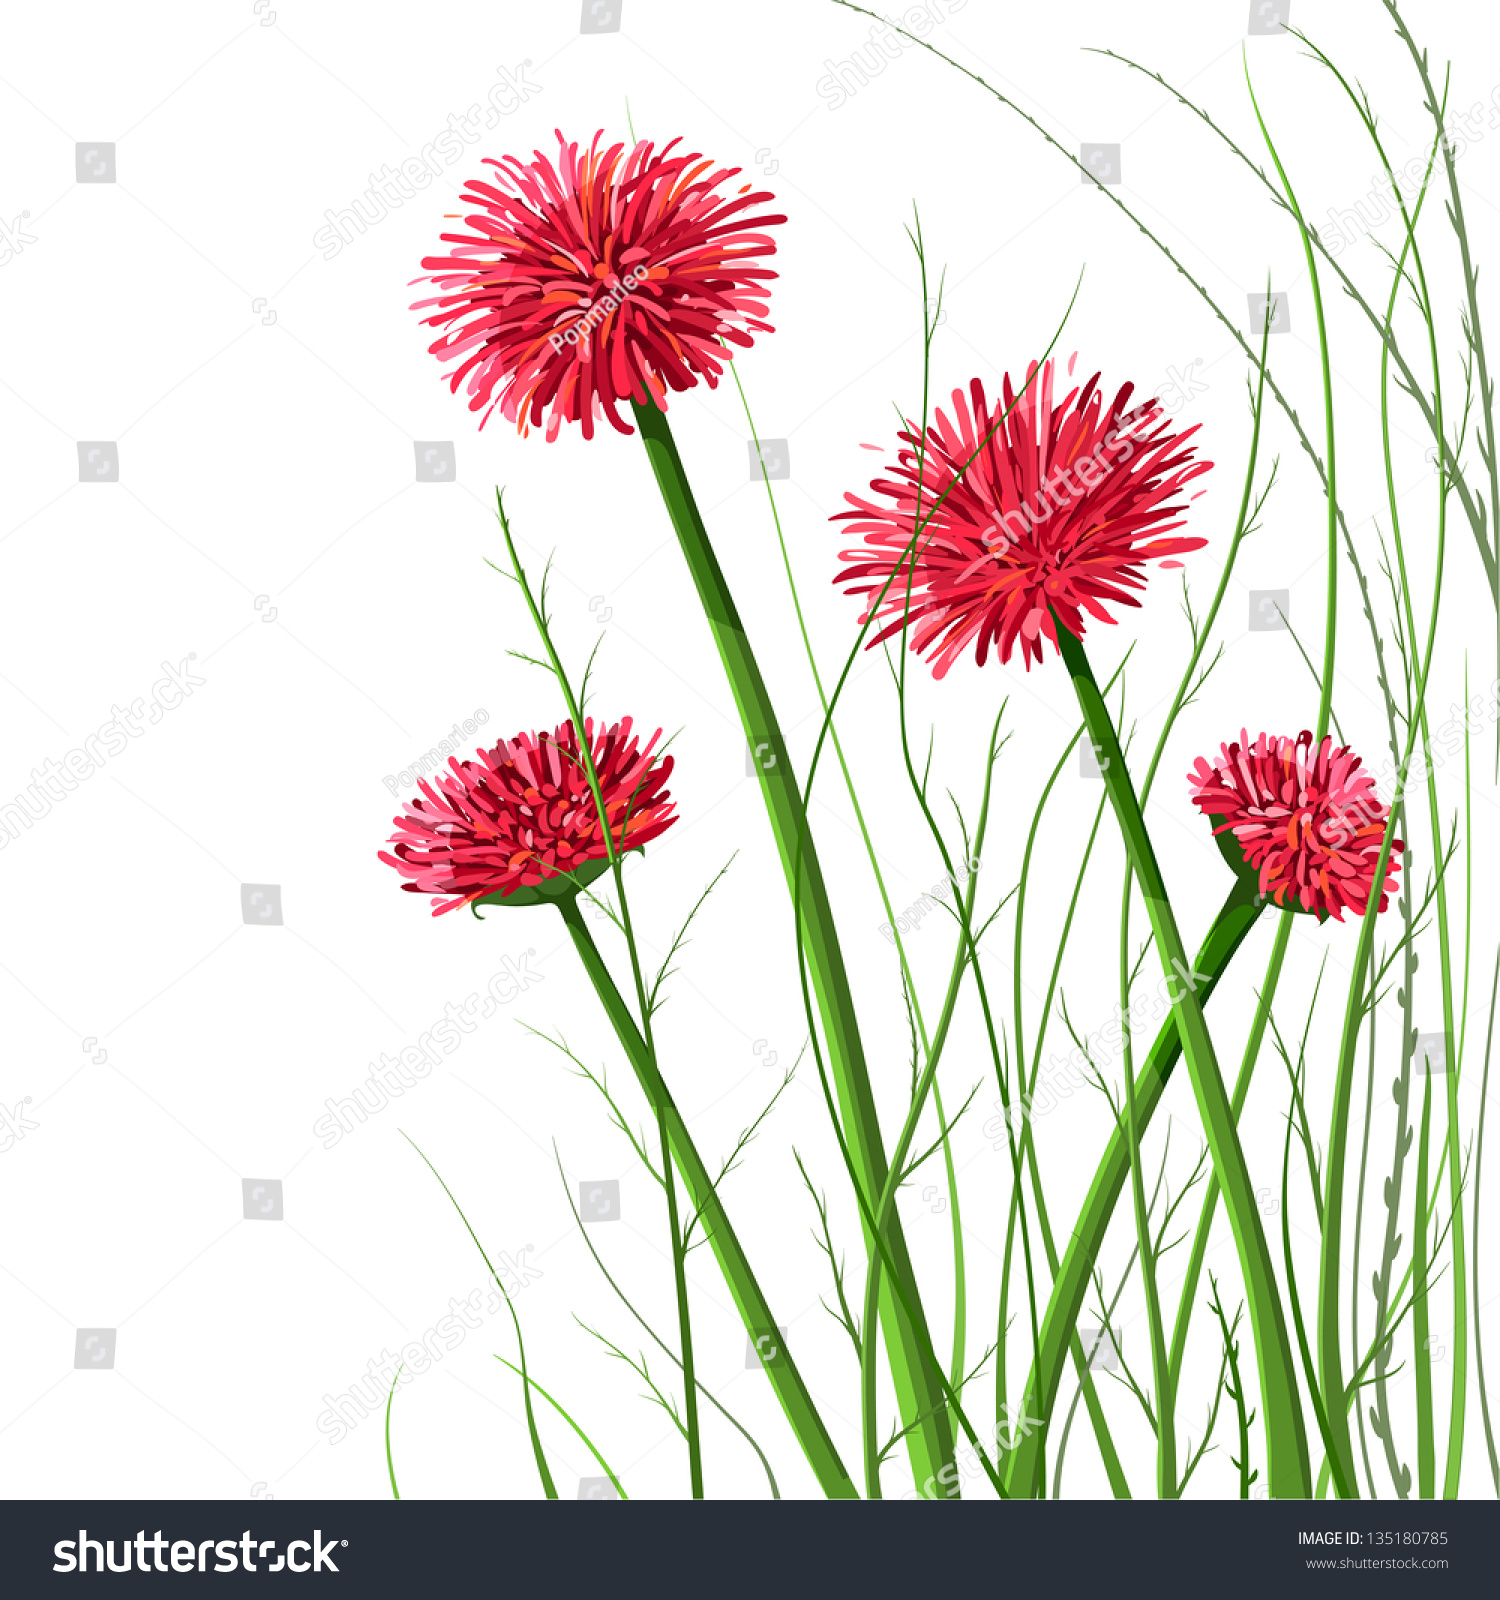 beautiful wild flowers illustration vector decorative flowers and grass illustration eps8 no effects - Decorative Flowers